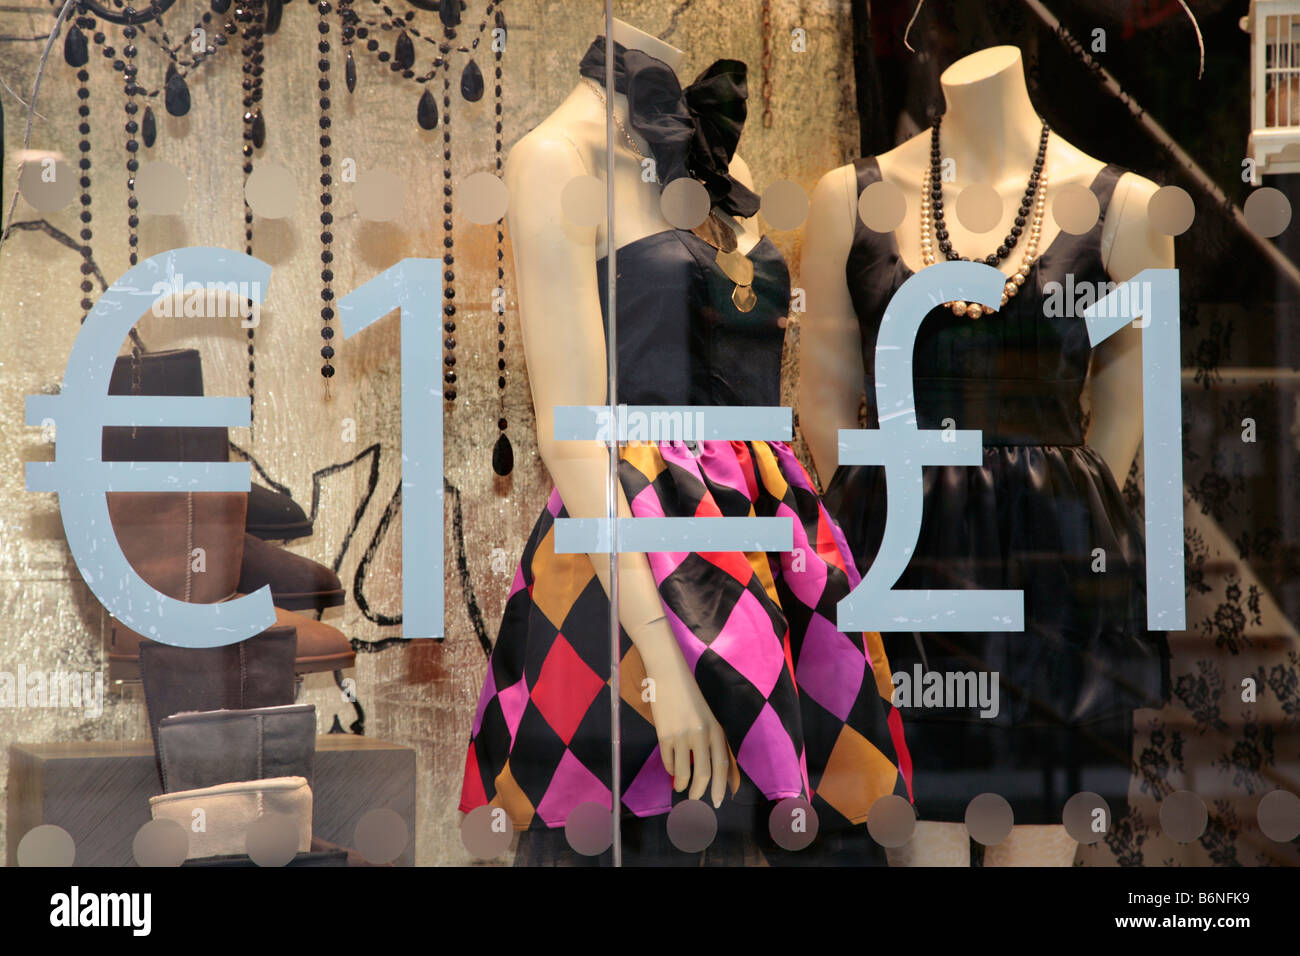 one euro equals one pound sign in the window of a fashion shop in belfast city centre uk Stock Photo